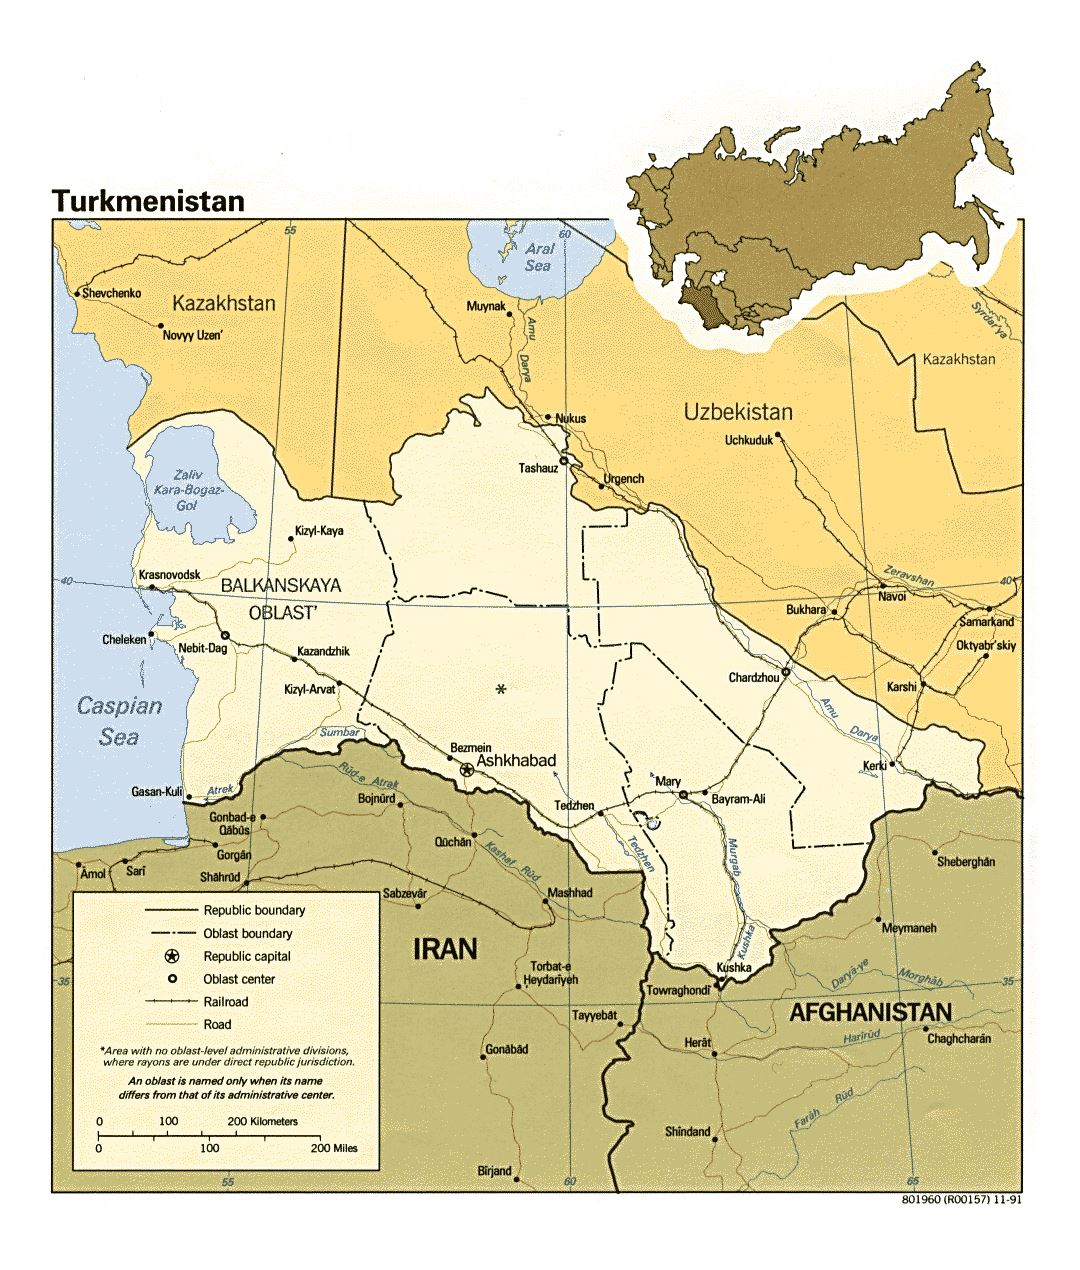 Detailed political and administrative map of Turkmenistan with roads, railroads and major cities - 1991